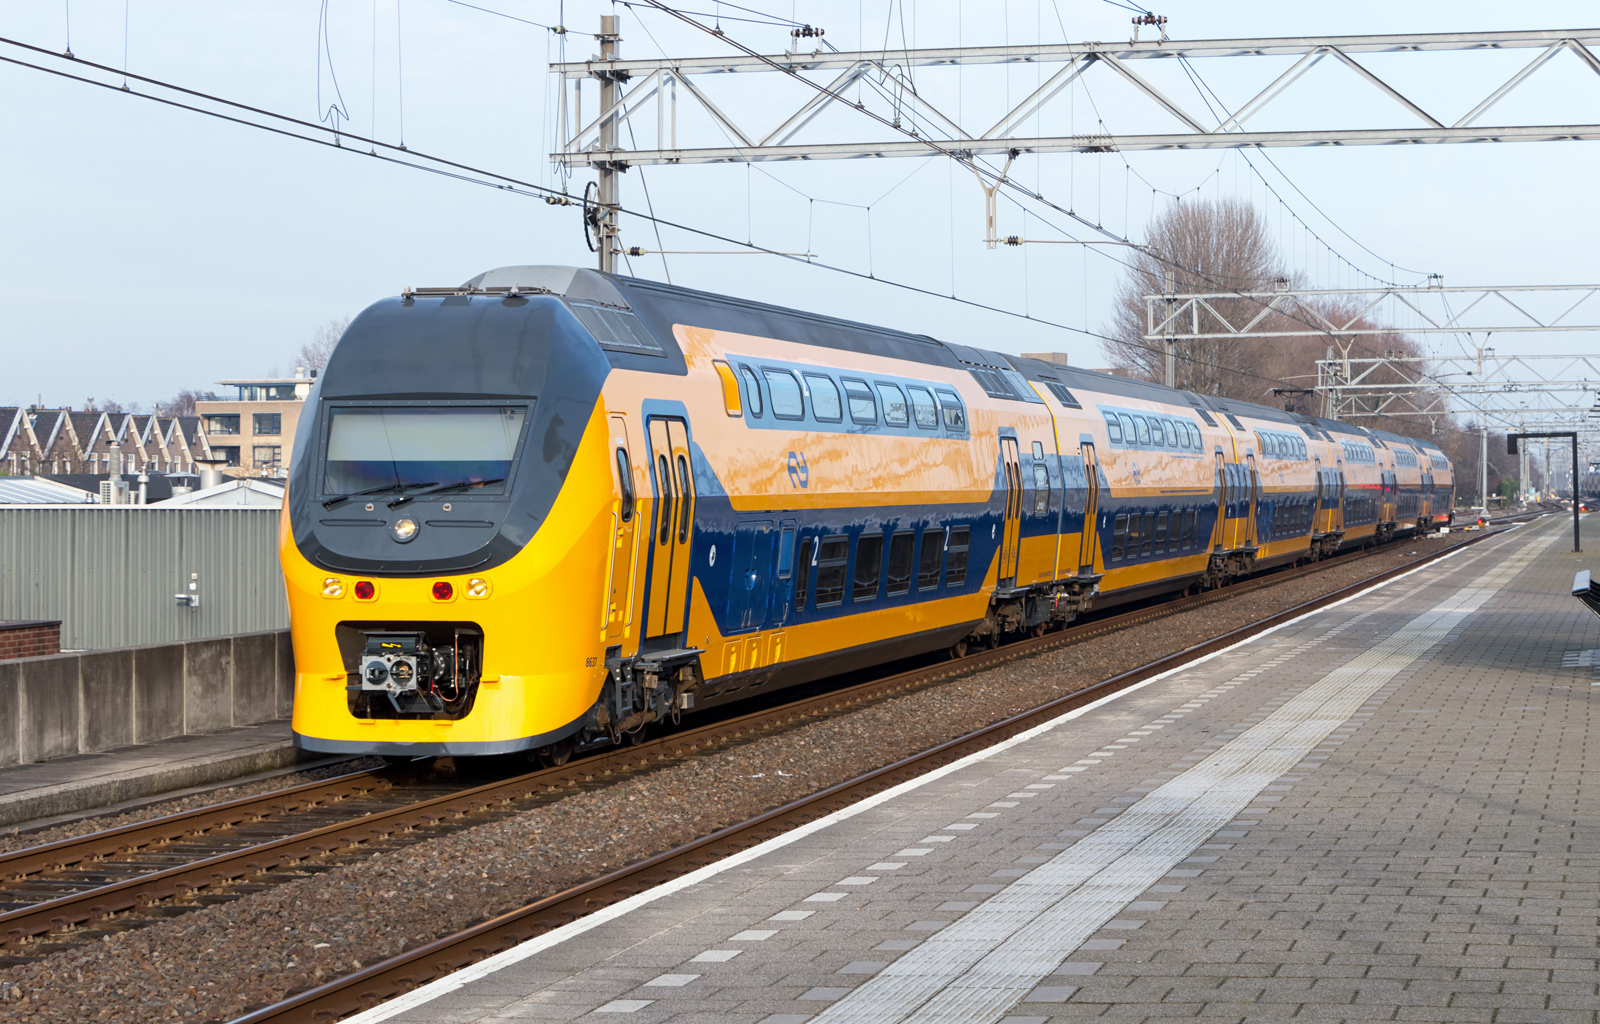 [NL] The first generation VIRM trains get a redesign